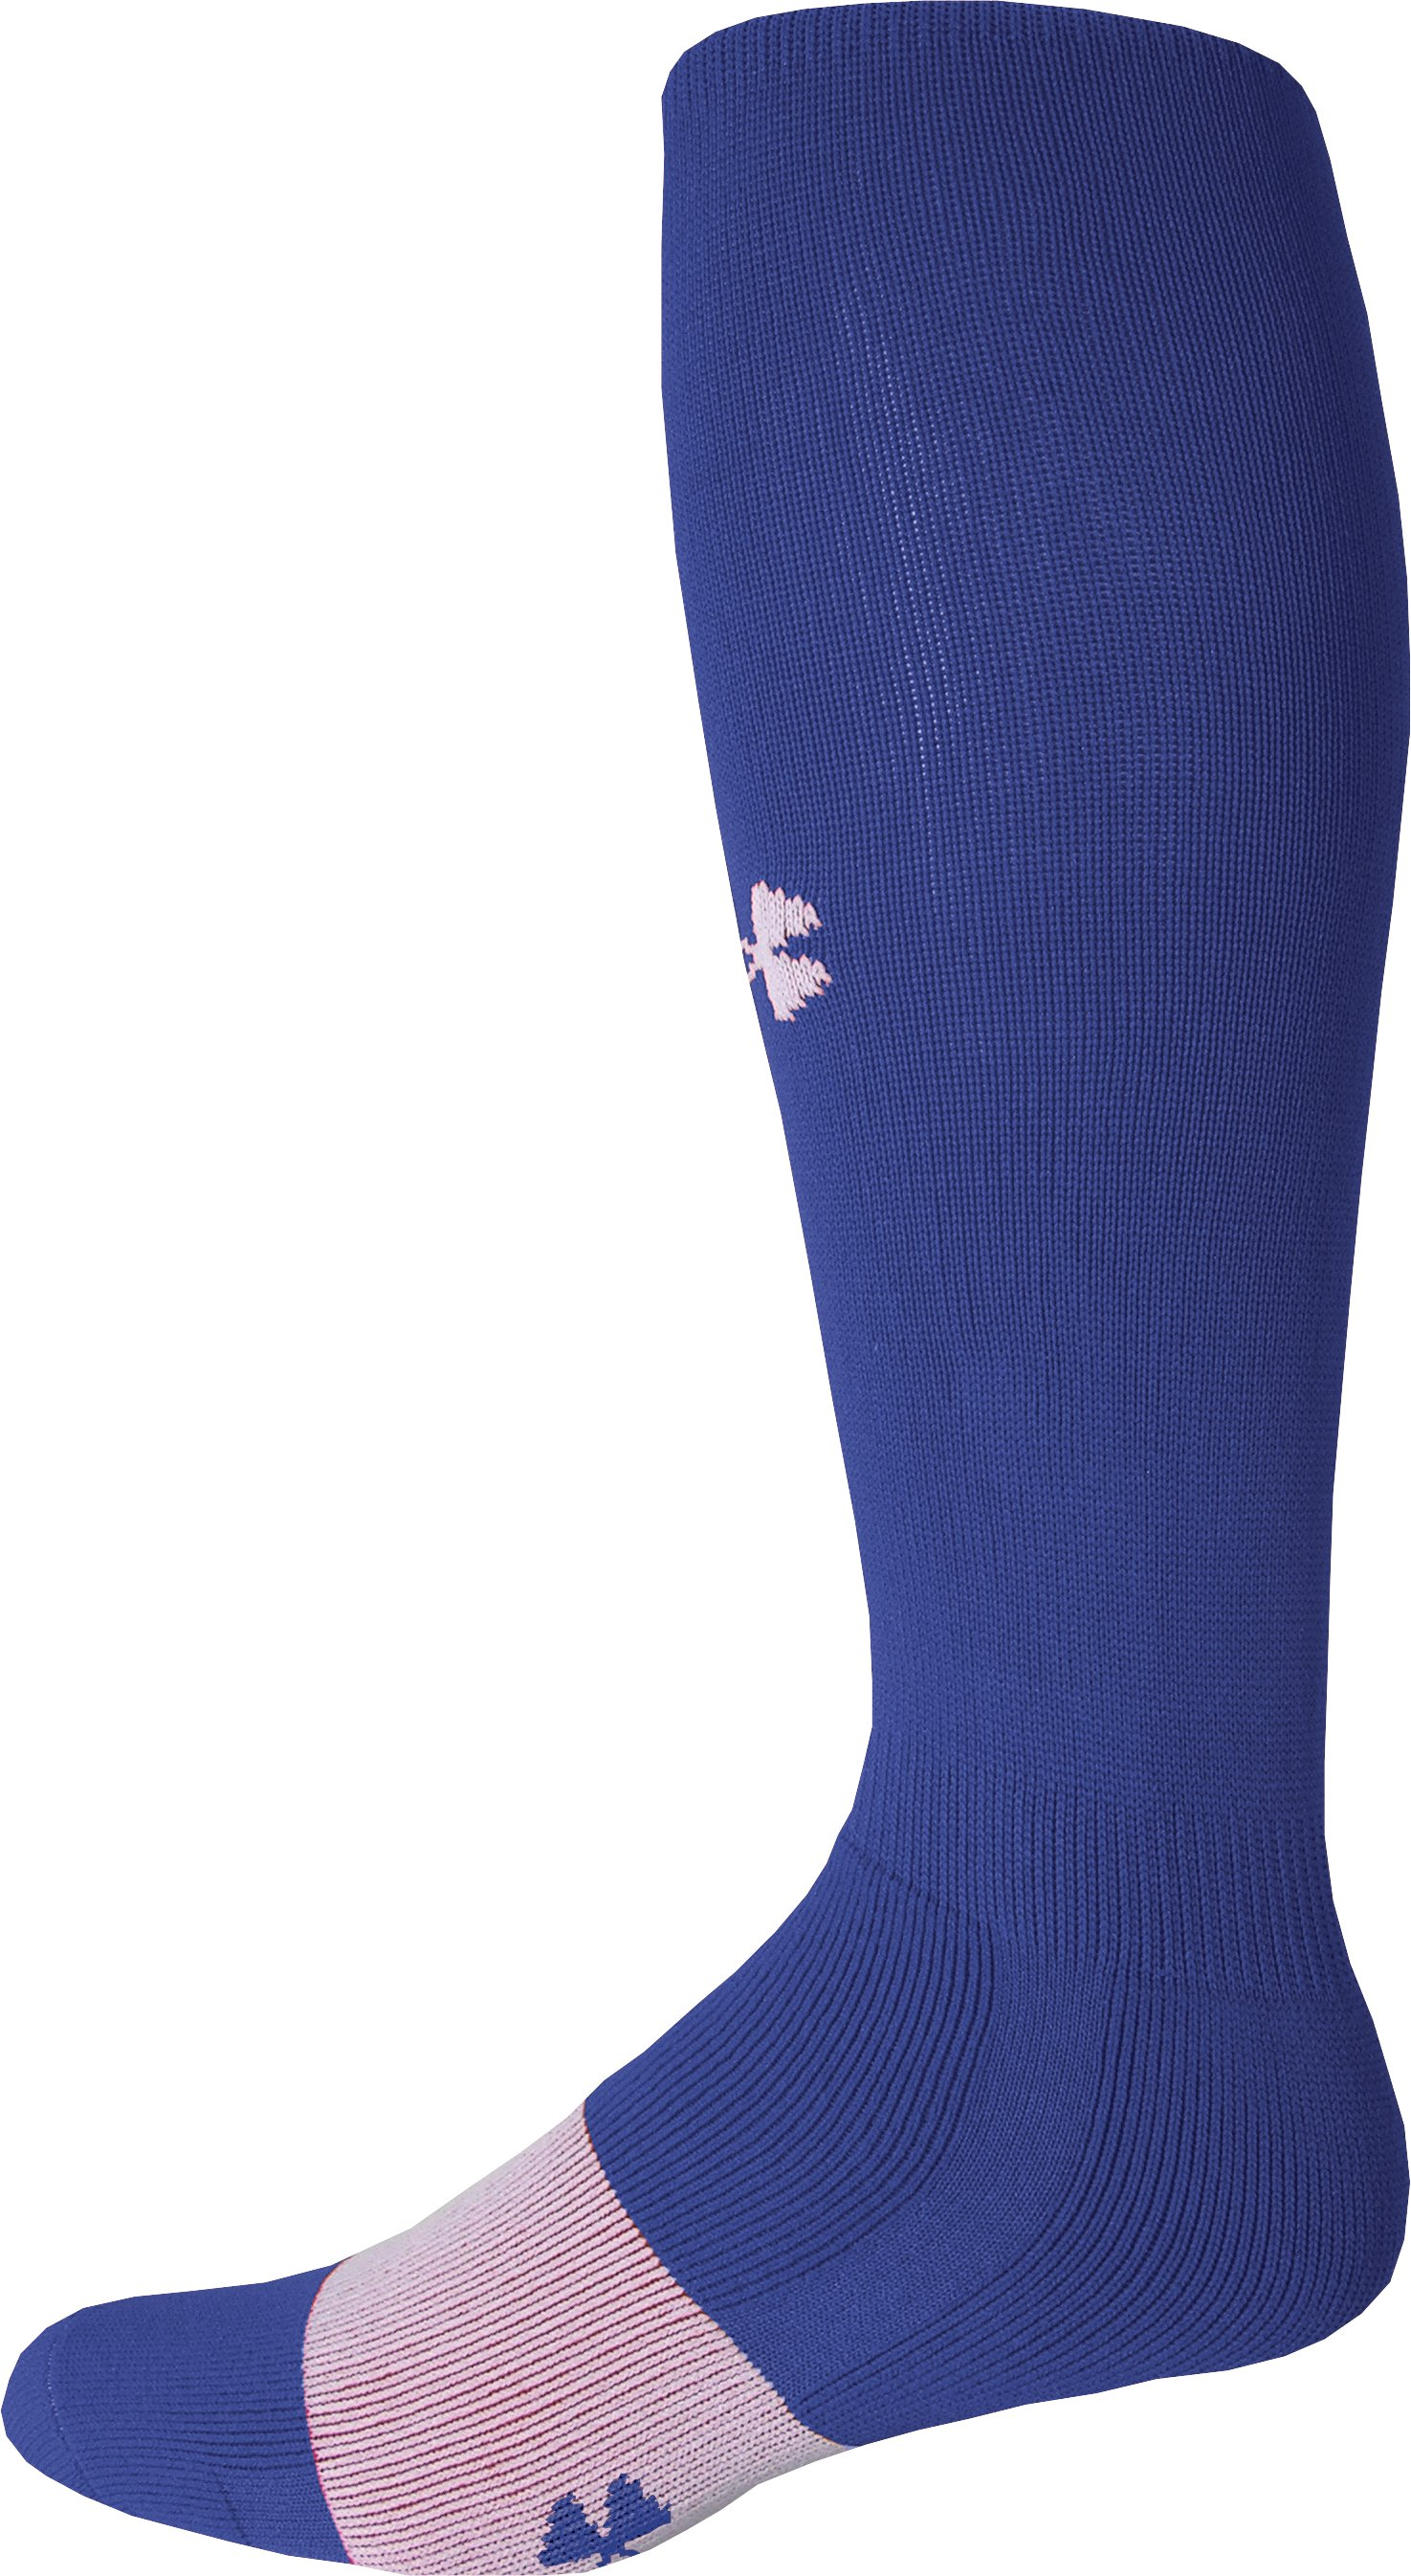 Men's Football Sock, Royal